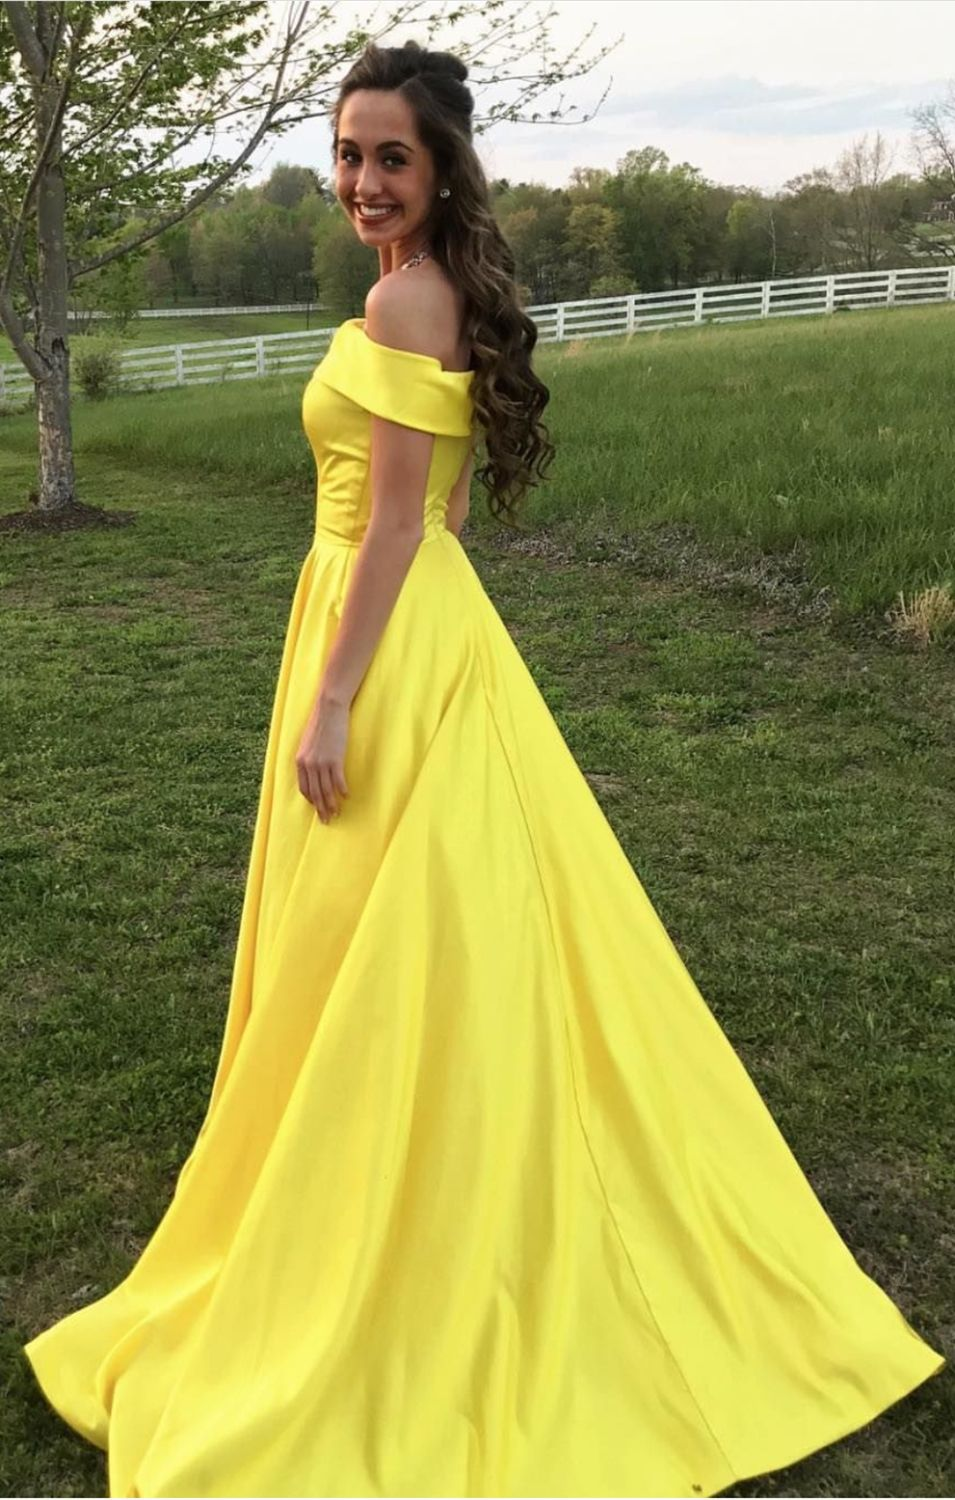 Yellow beautiful prom dresses photo recommend to wear for autumn in 2019